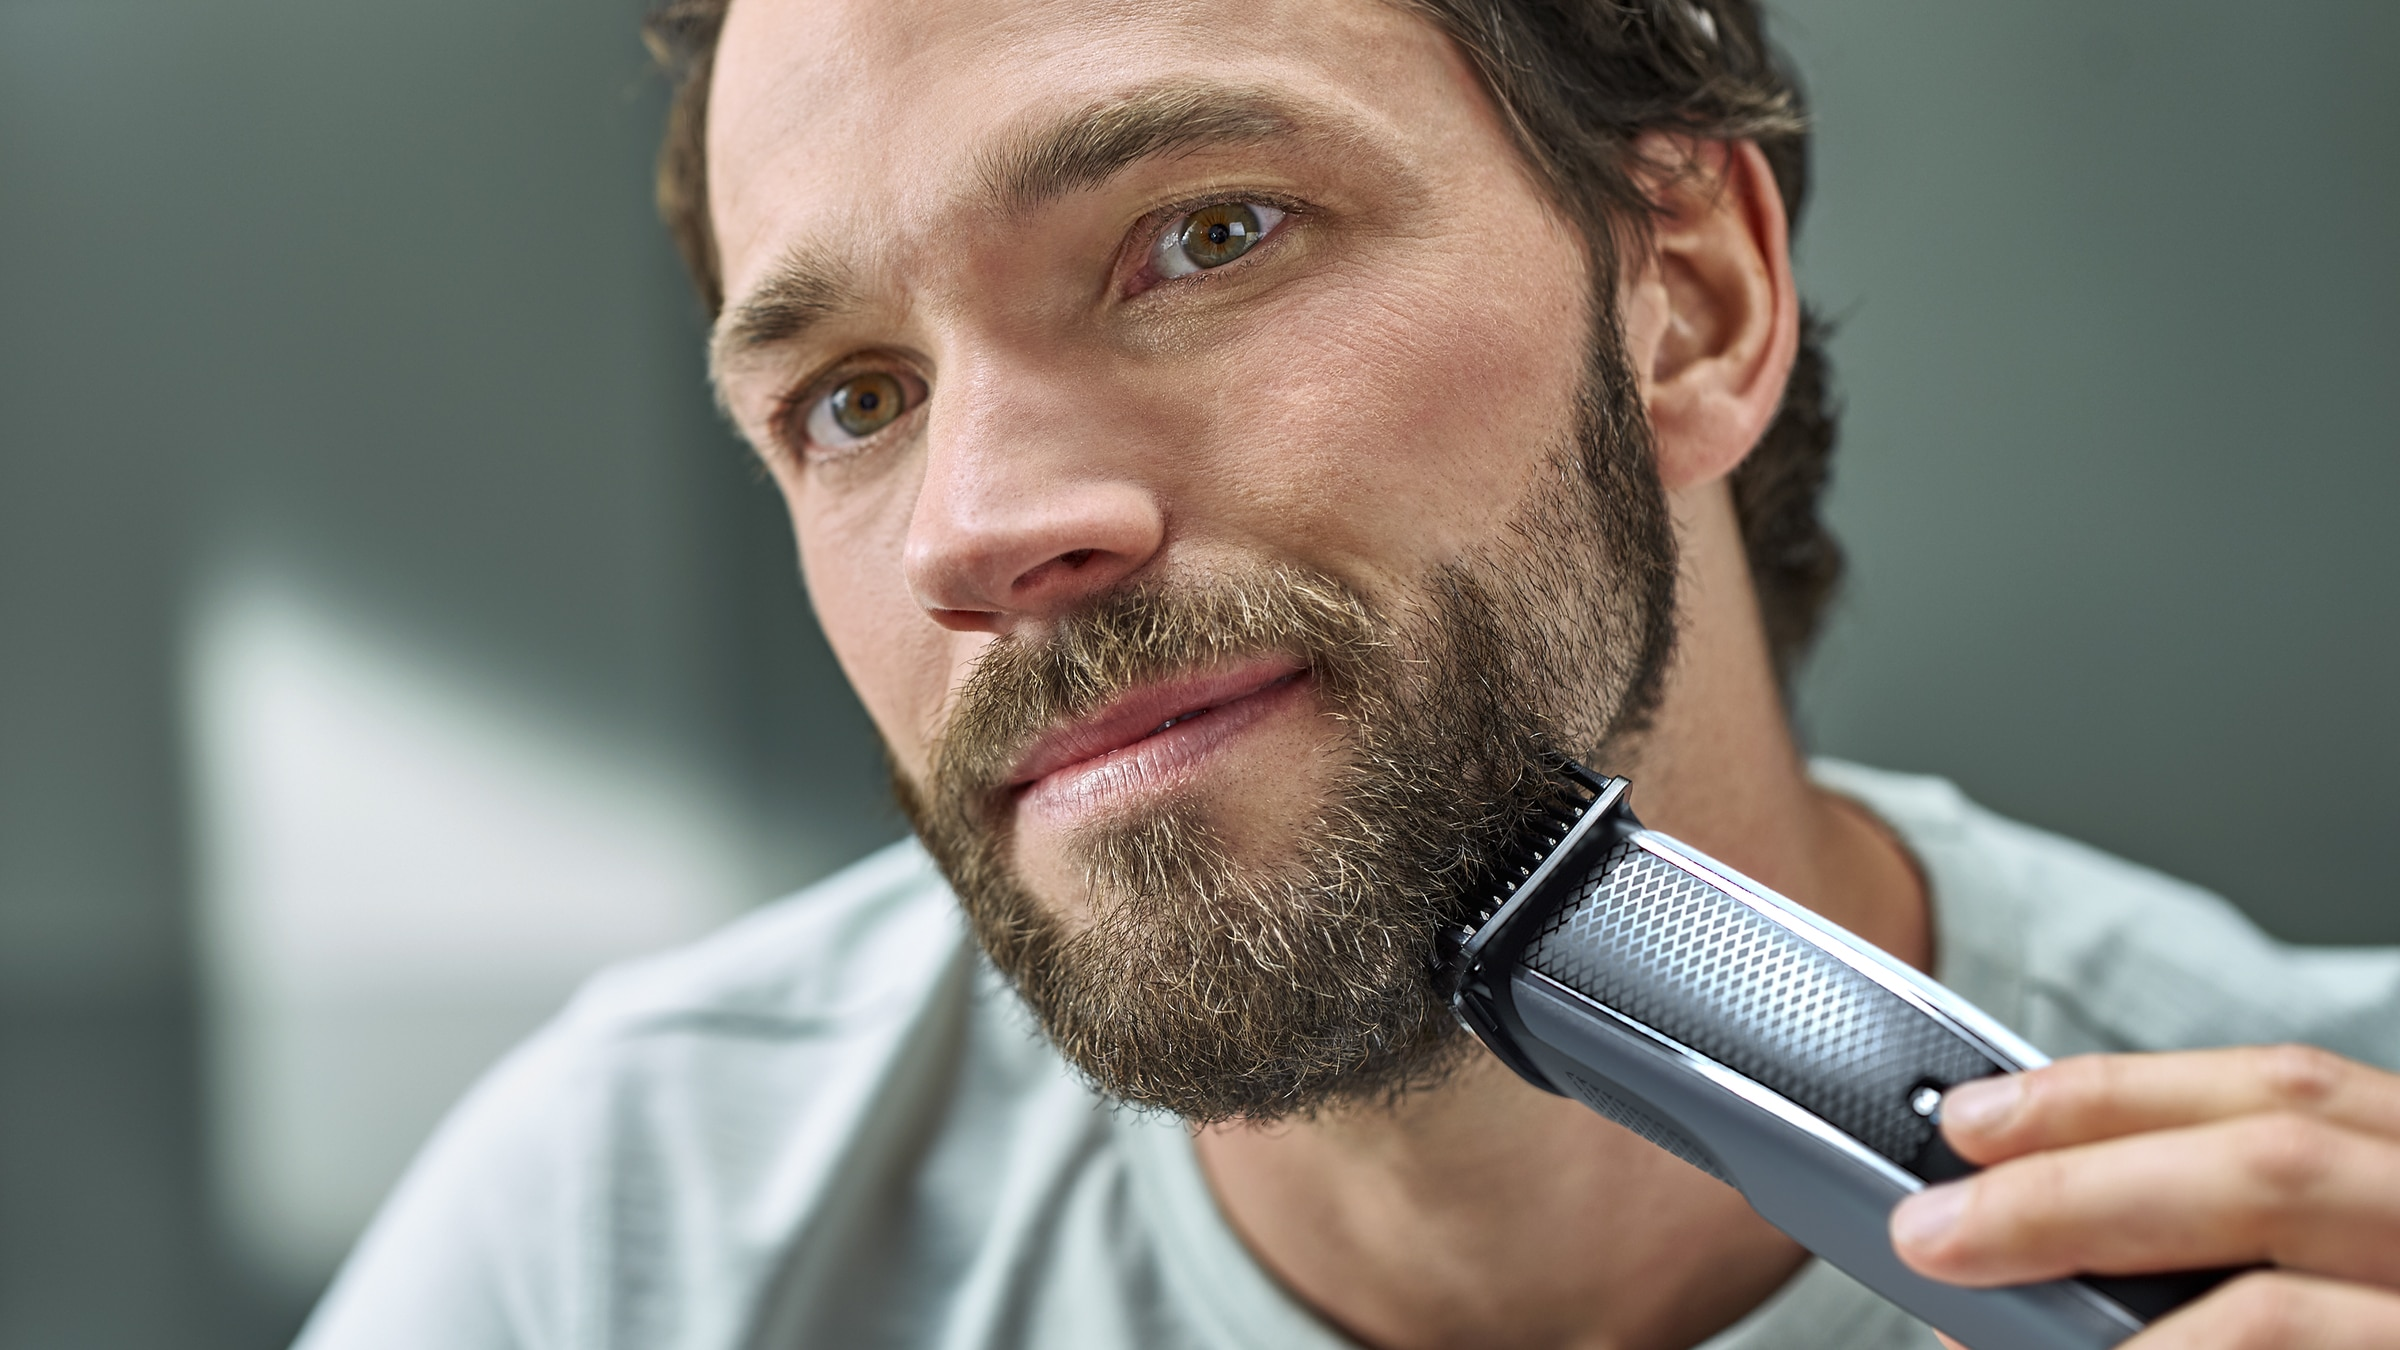 8 Best Stubble Trimmers - Perfect Grooming at Home